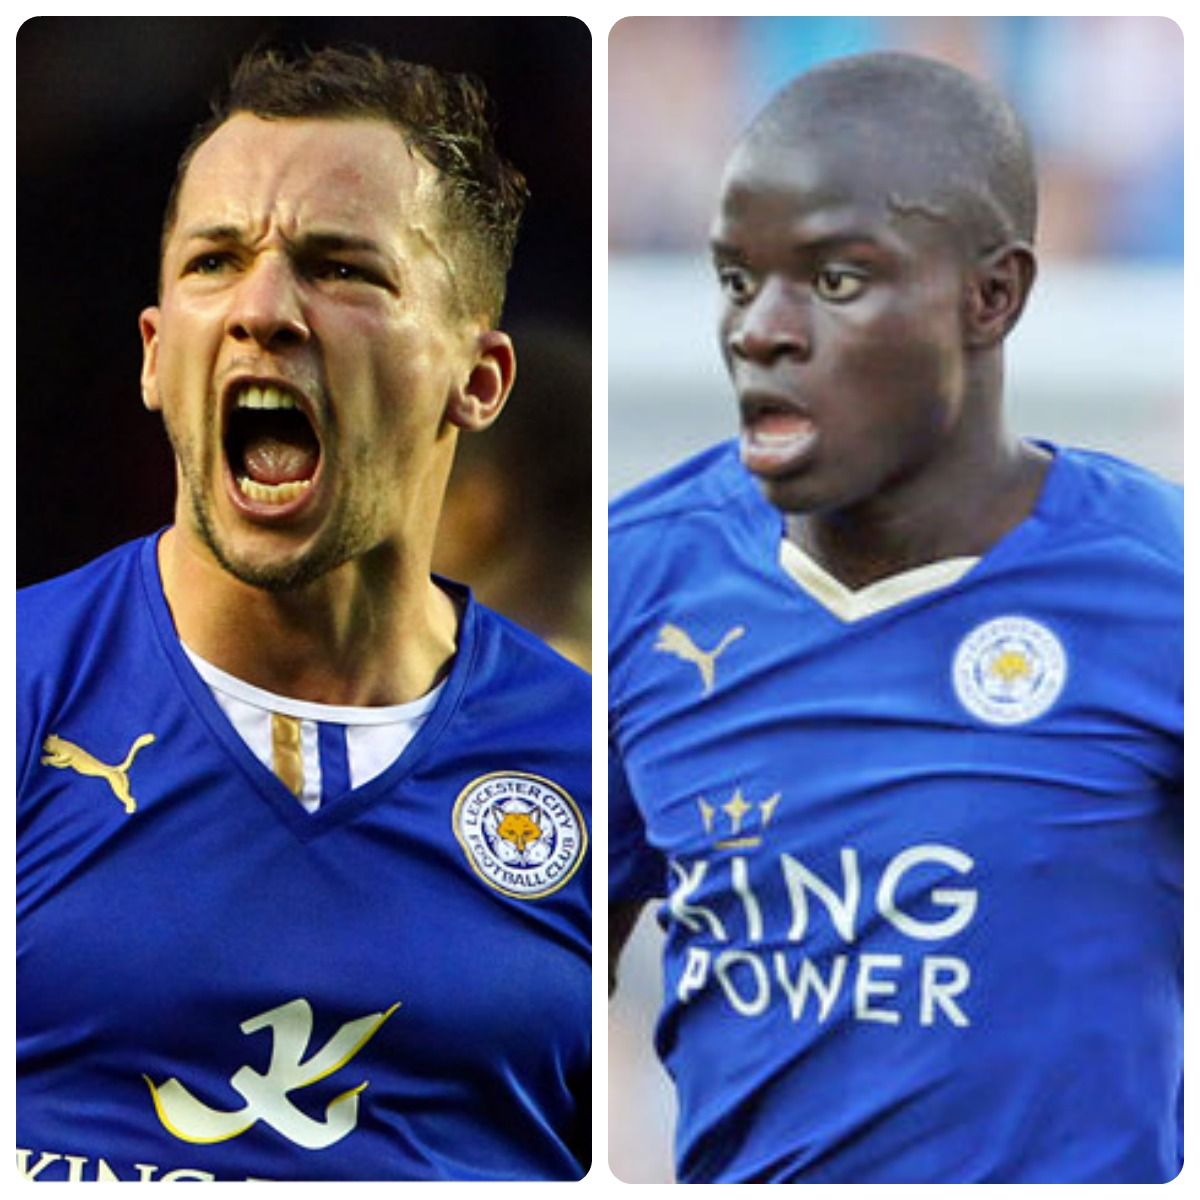 Leicester's dynamic duo: Drinkwater and Kante Image source: Express.co.uk & c.smimg.net